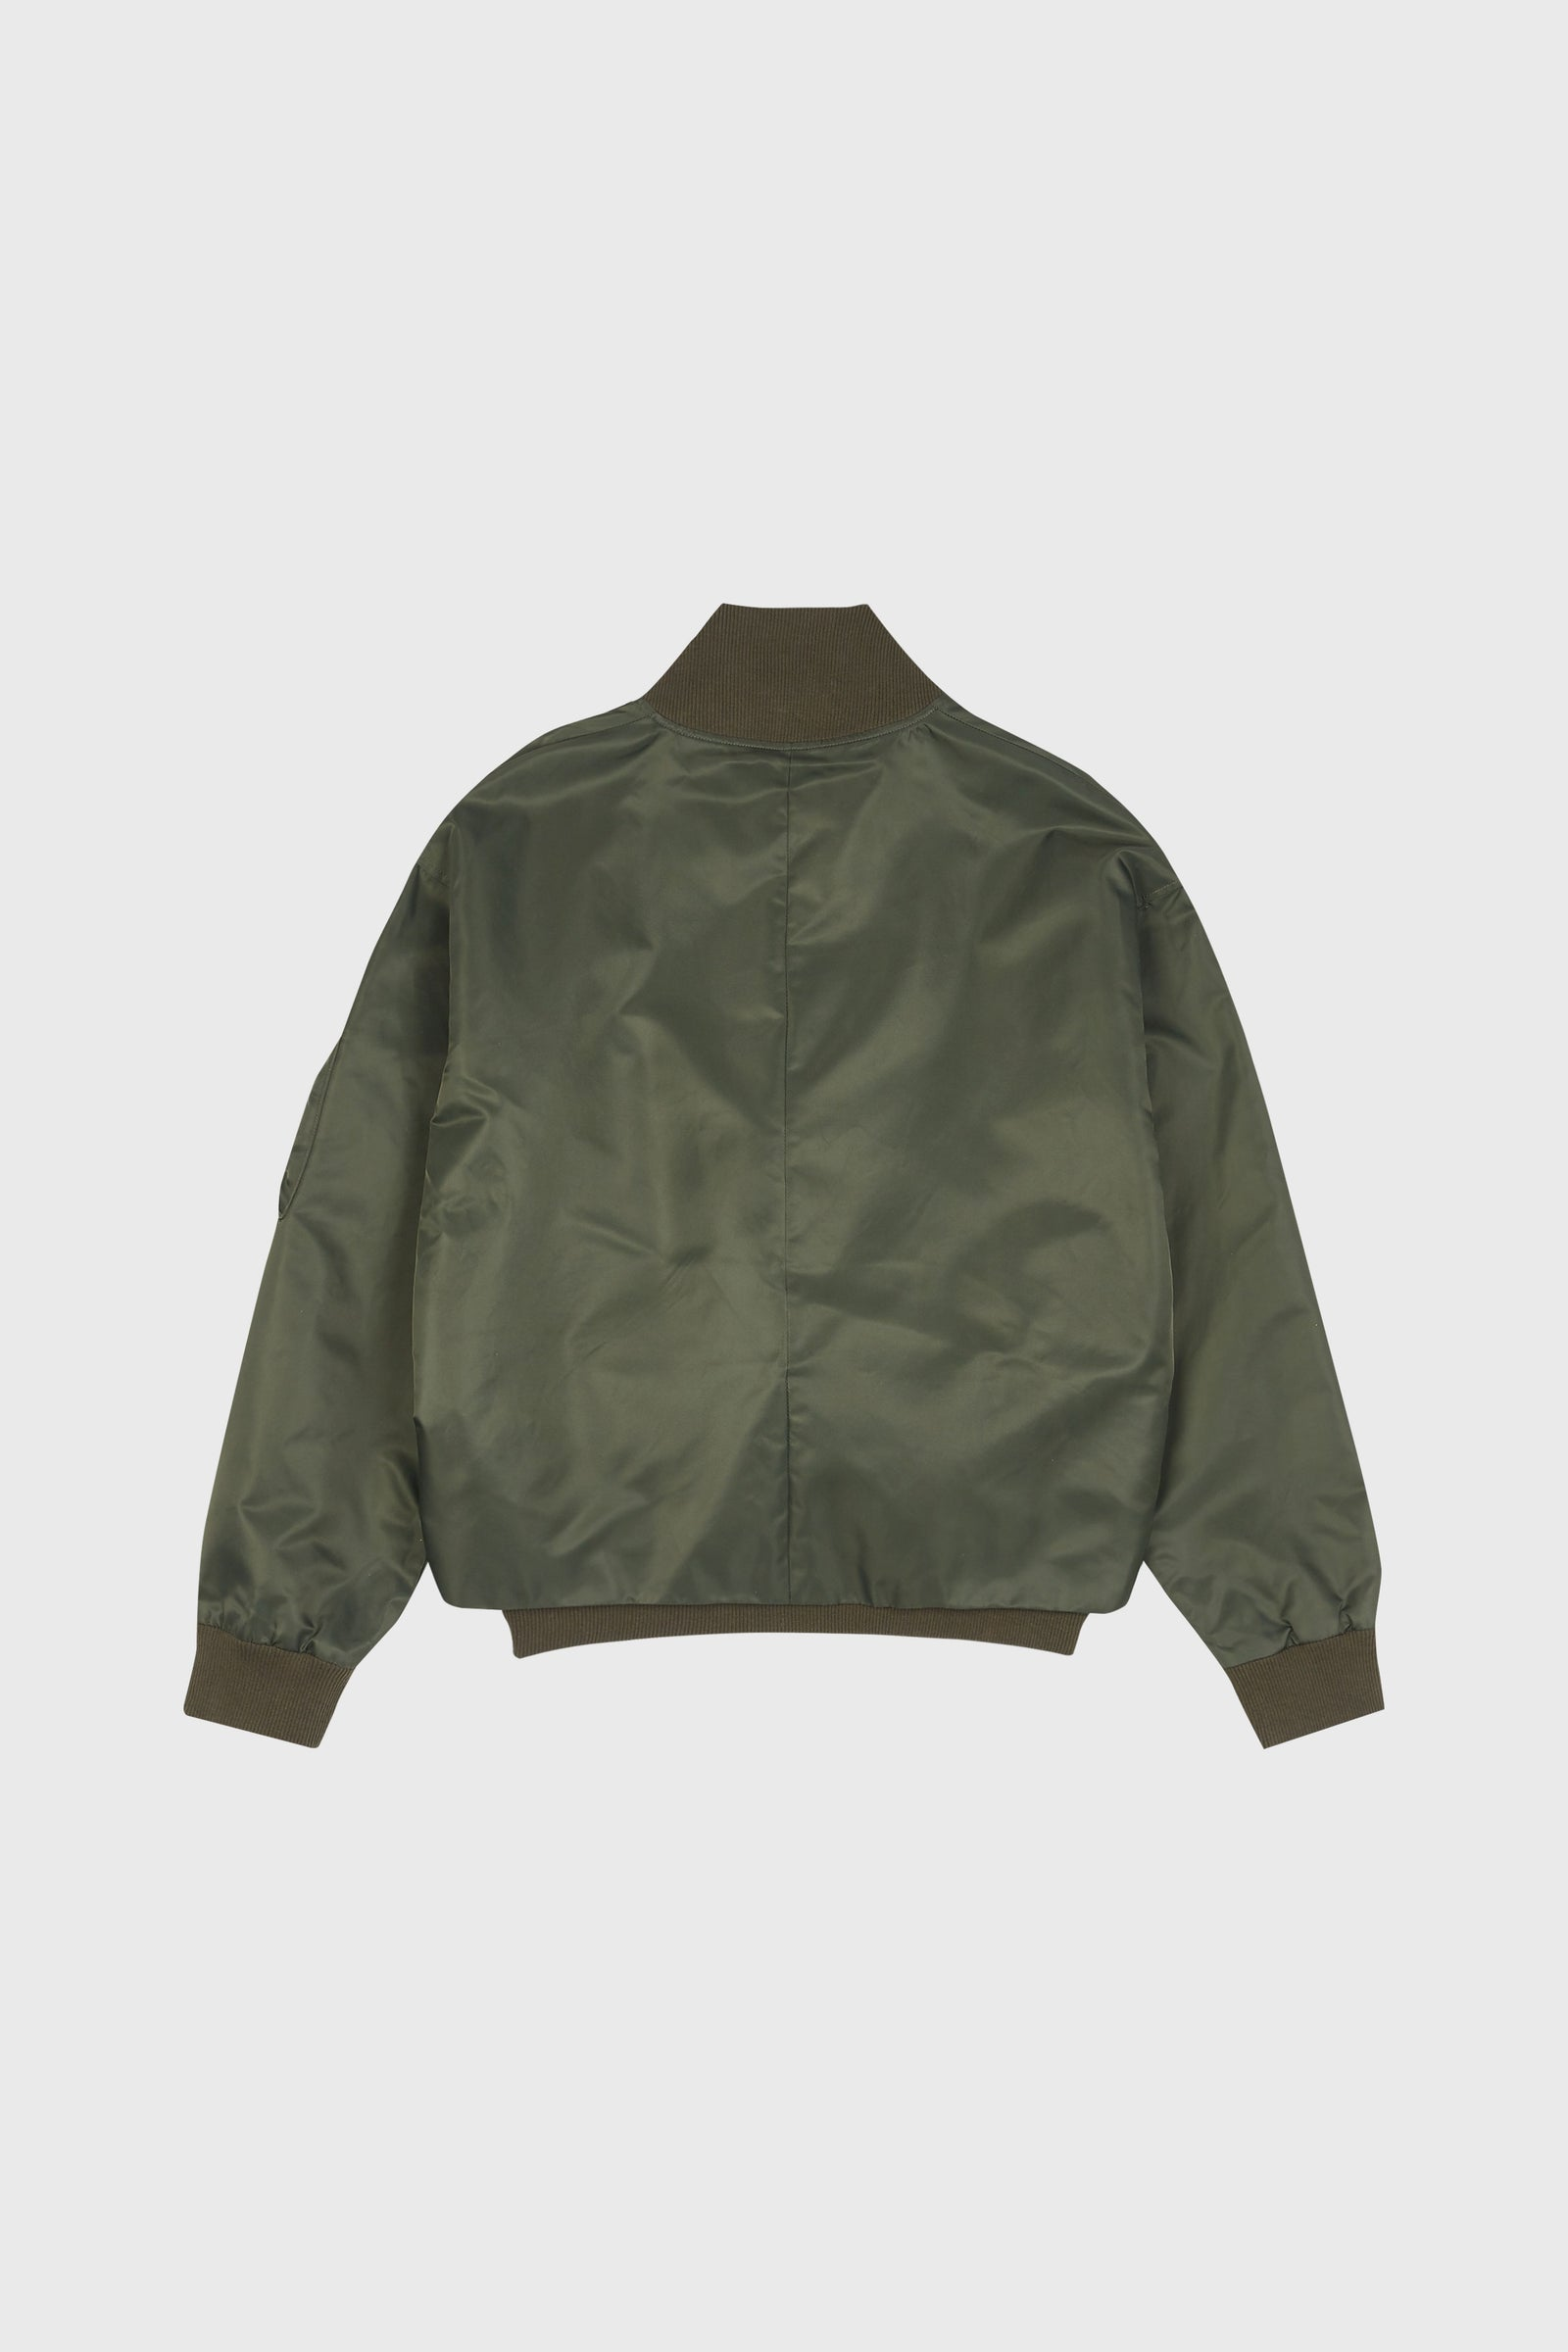 Photo of Army Green Double Layered Jeogori Bomber Jacket, number 7